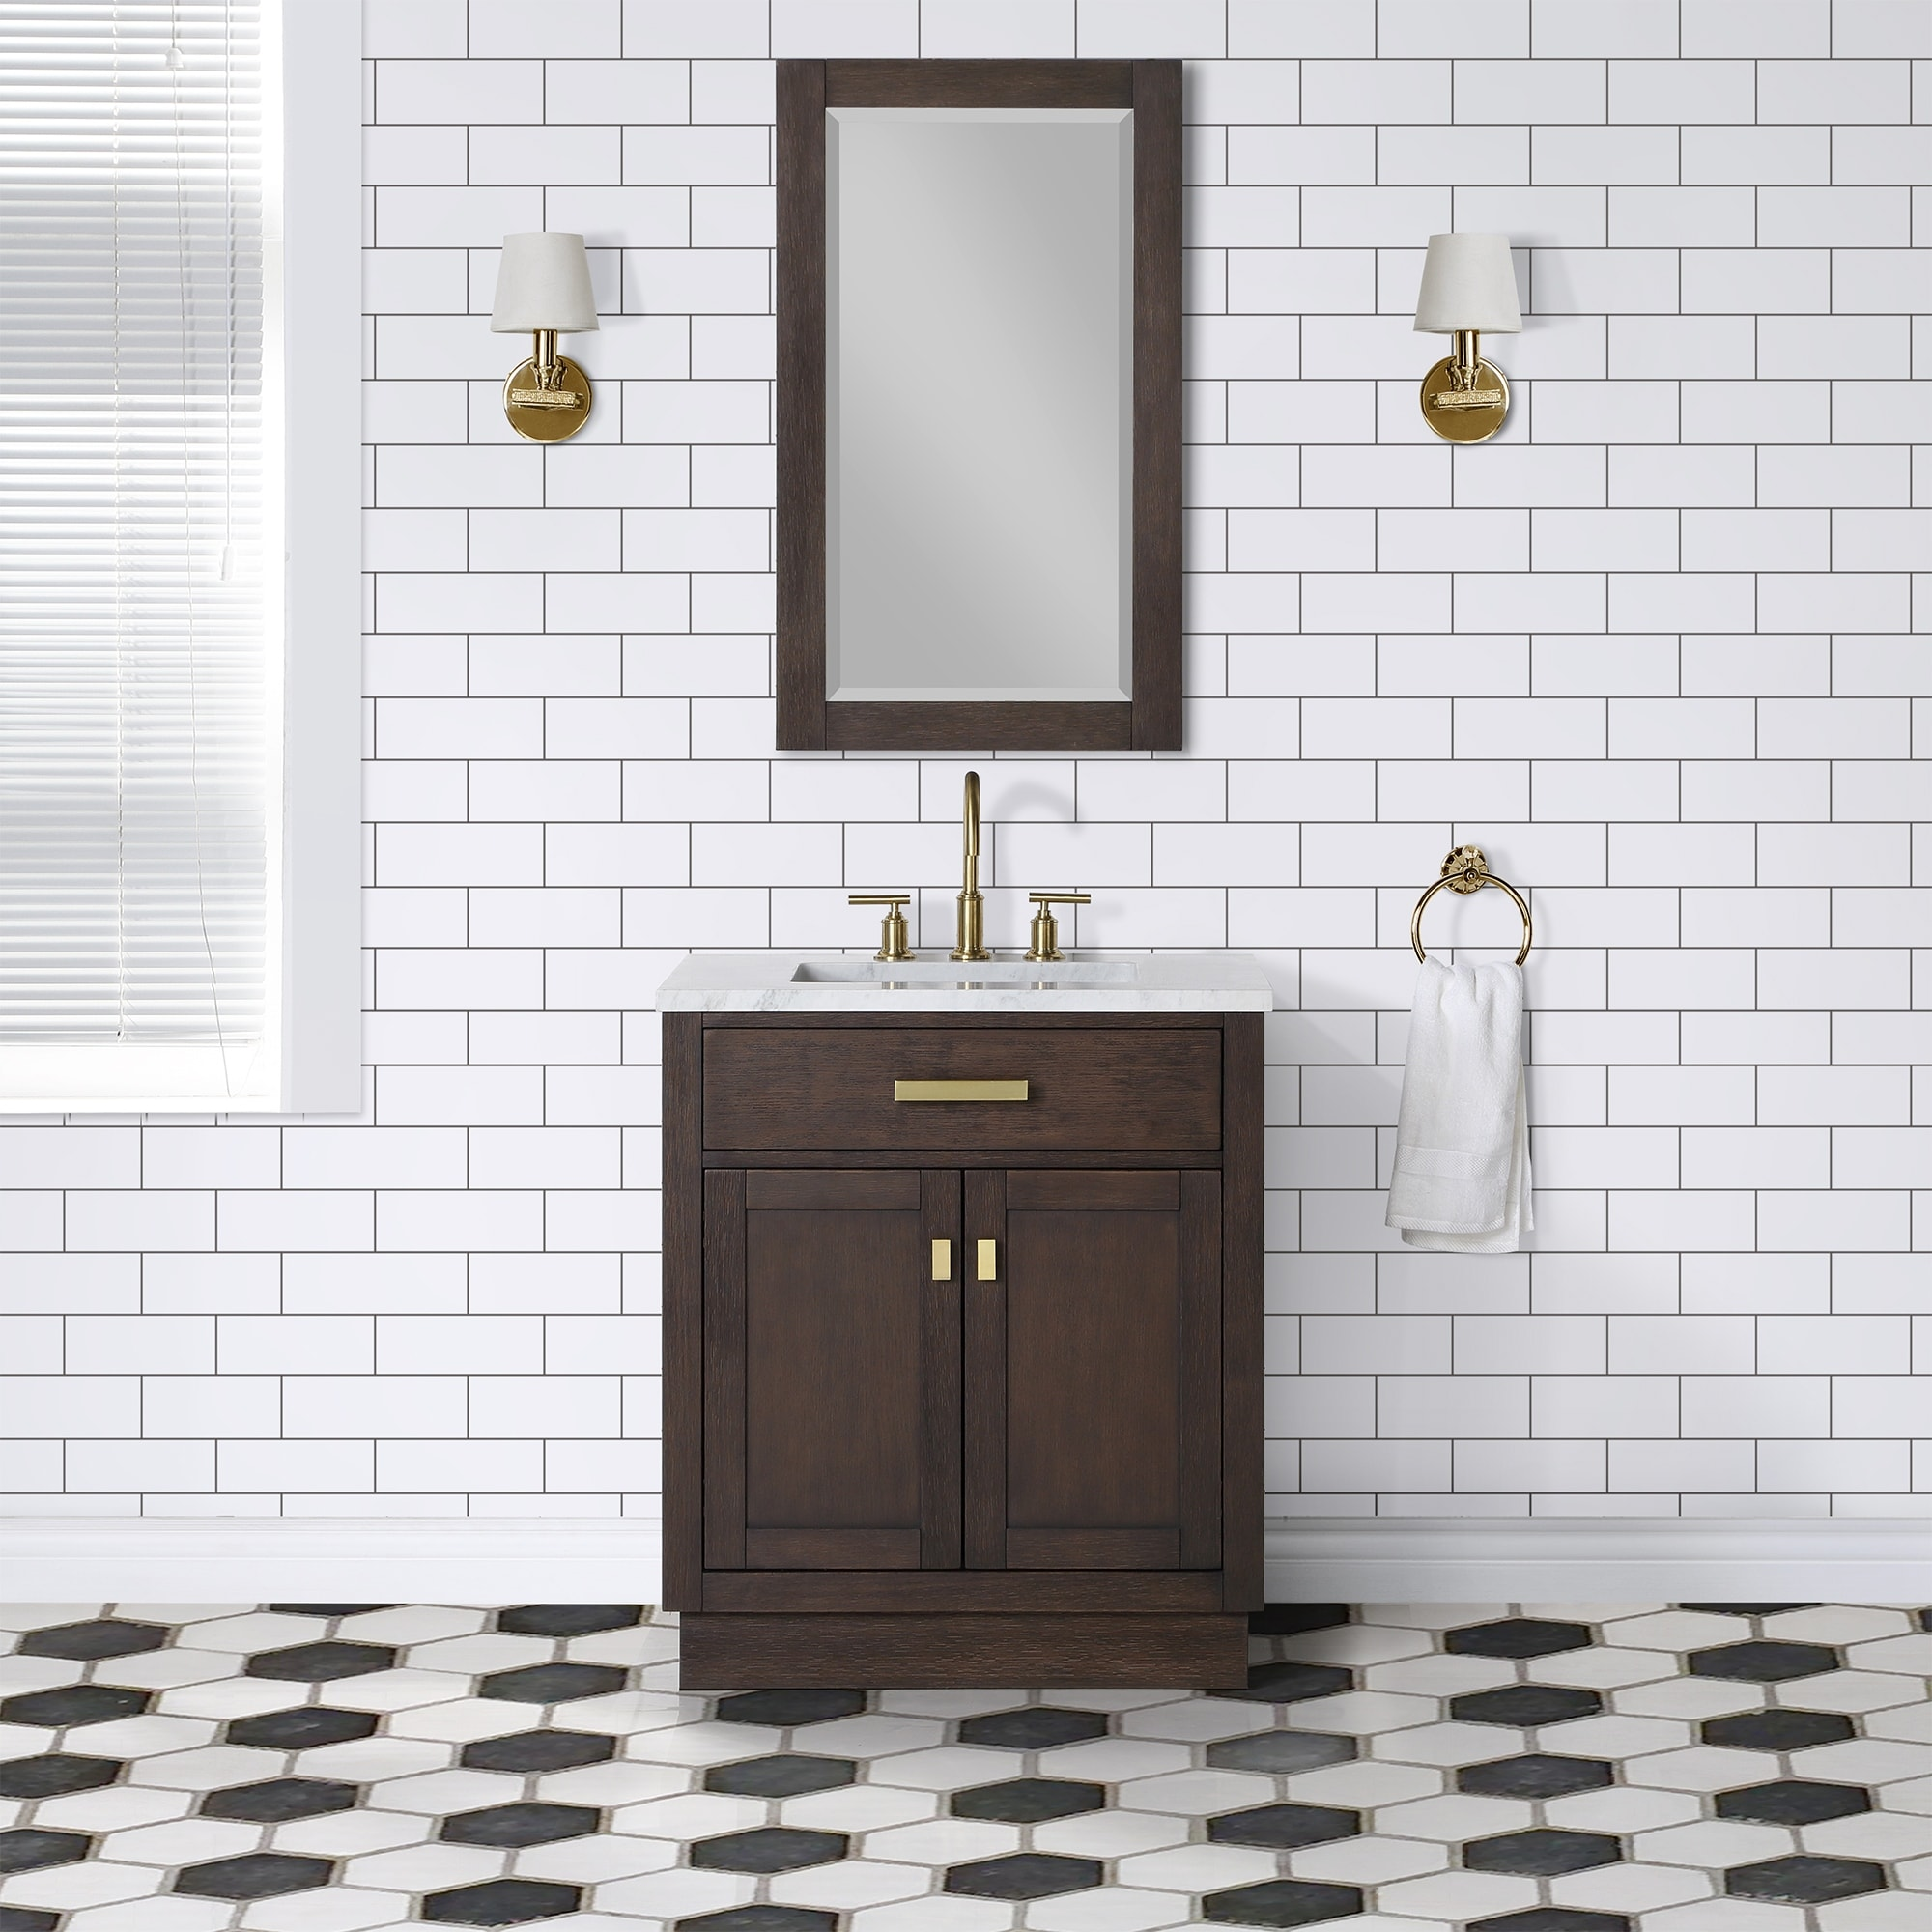 Chestnut 30 Single Bathroom Vanity Vanity With Mirror S Overstock 31227661